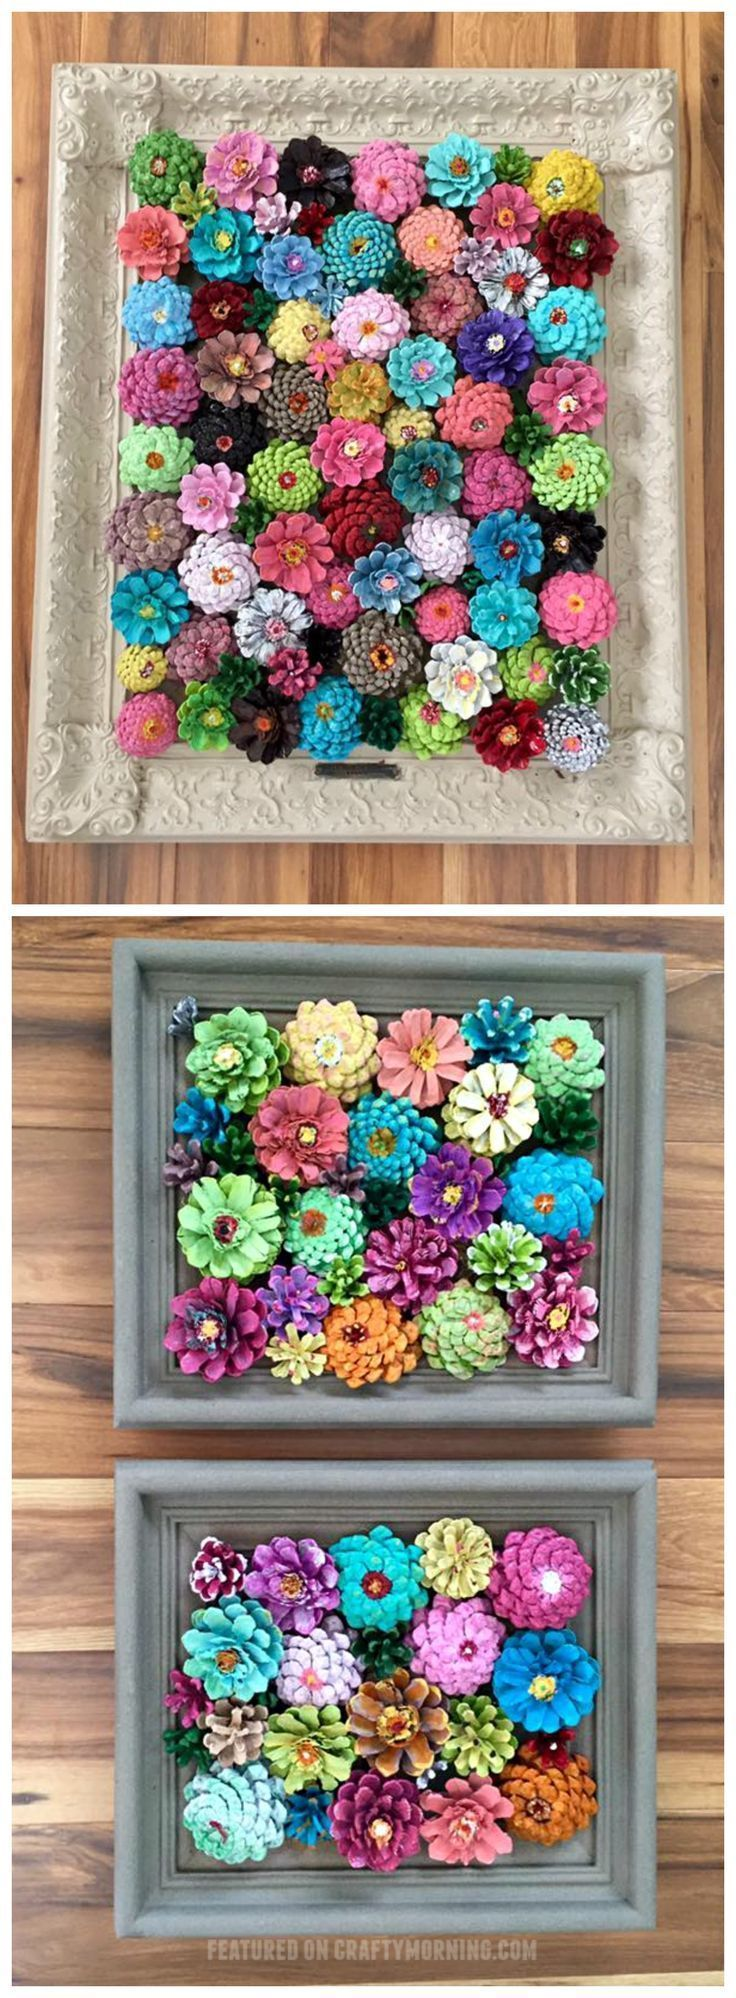 Best 25 outdoor art ideas on pinterest natural childrens paint perfect craft for summer or spring makes a beautiful wall art piece tap the link now to find gadgets for survival and outdoor camping amipublicfo Images